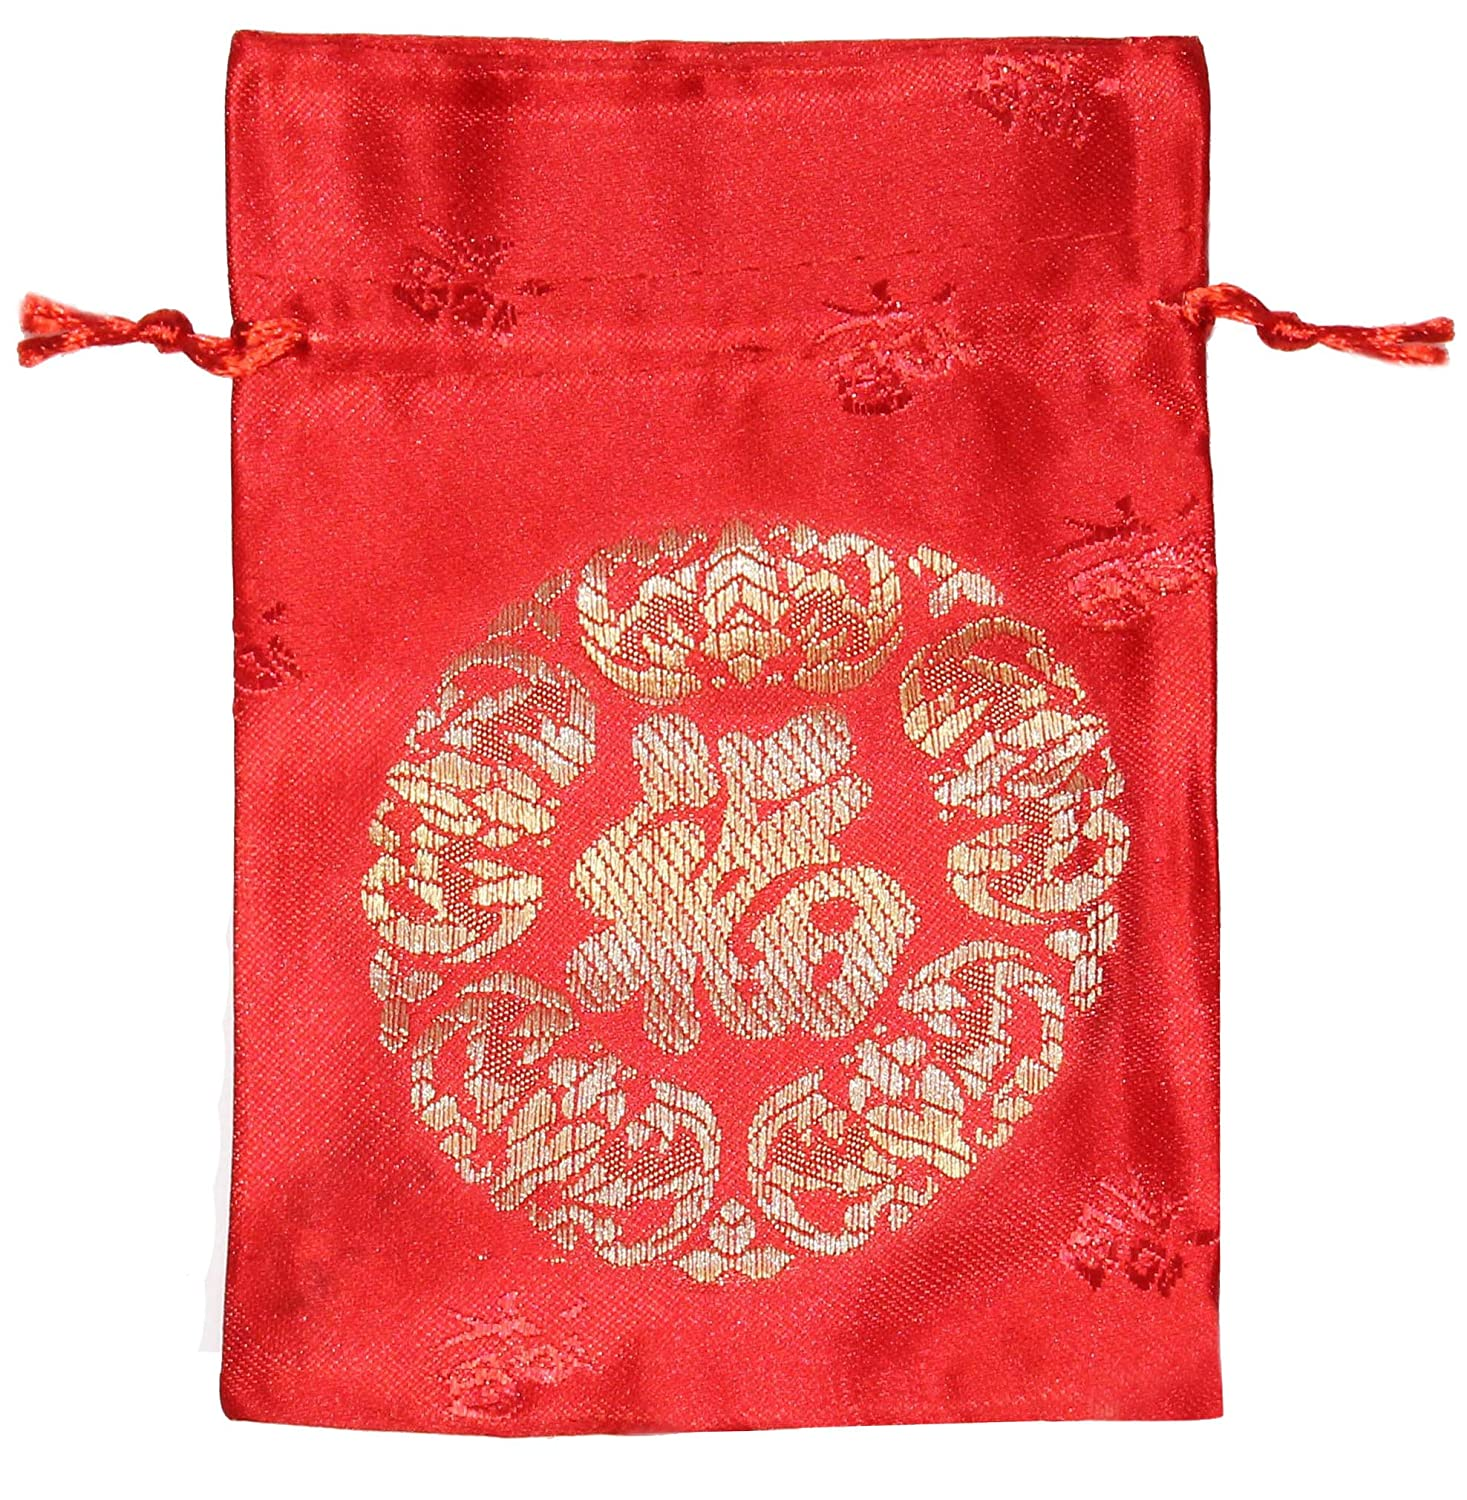 Amazon.com  Lucore Chinese Good Luck and Fortune Text Red Brocade Pouch -  10 PC Set of Lucky Silk Style Gift Bags  Home   Kitchen 12dc2a82b